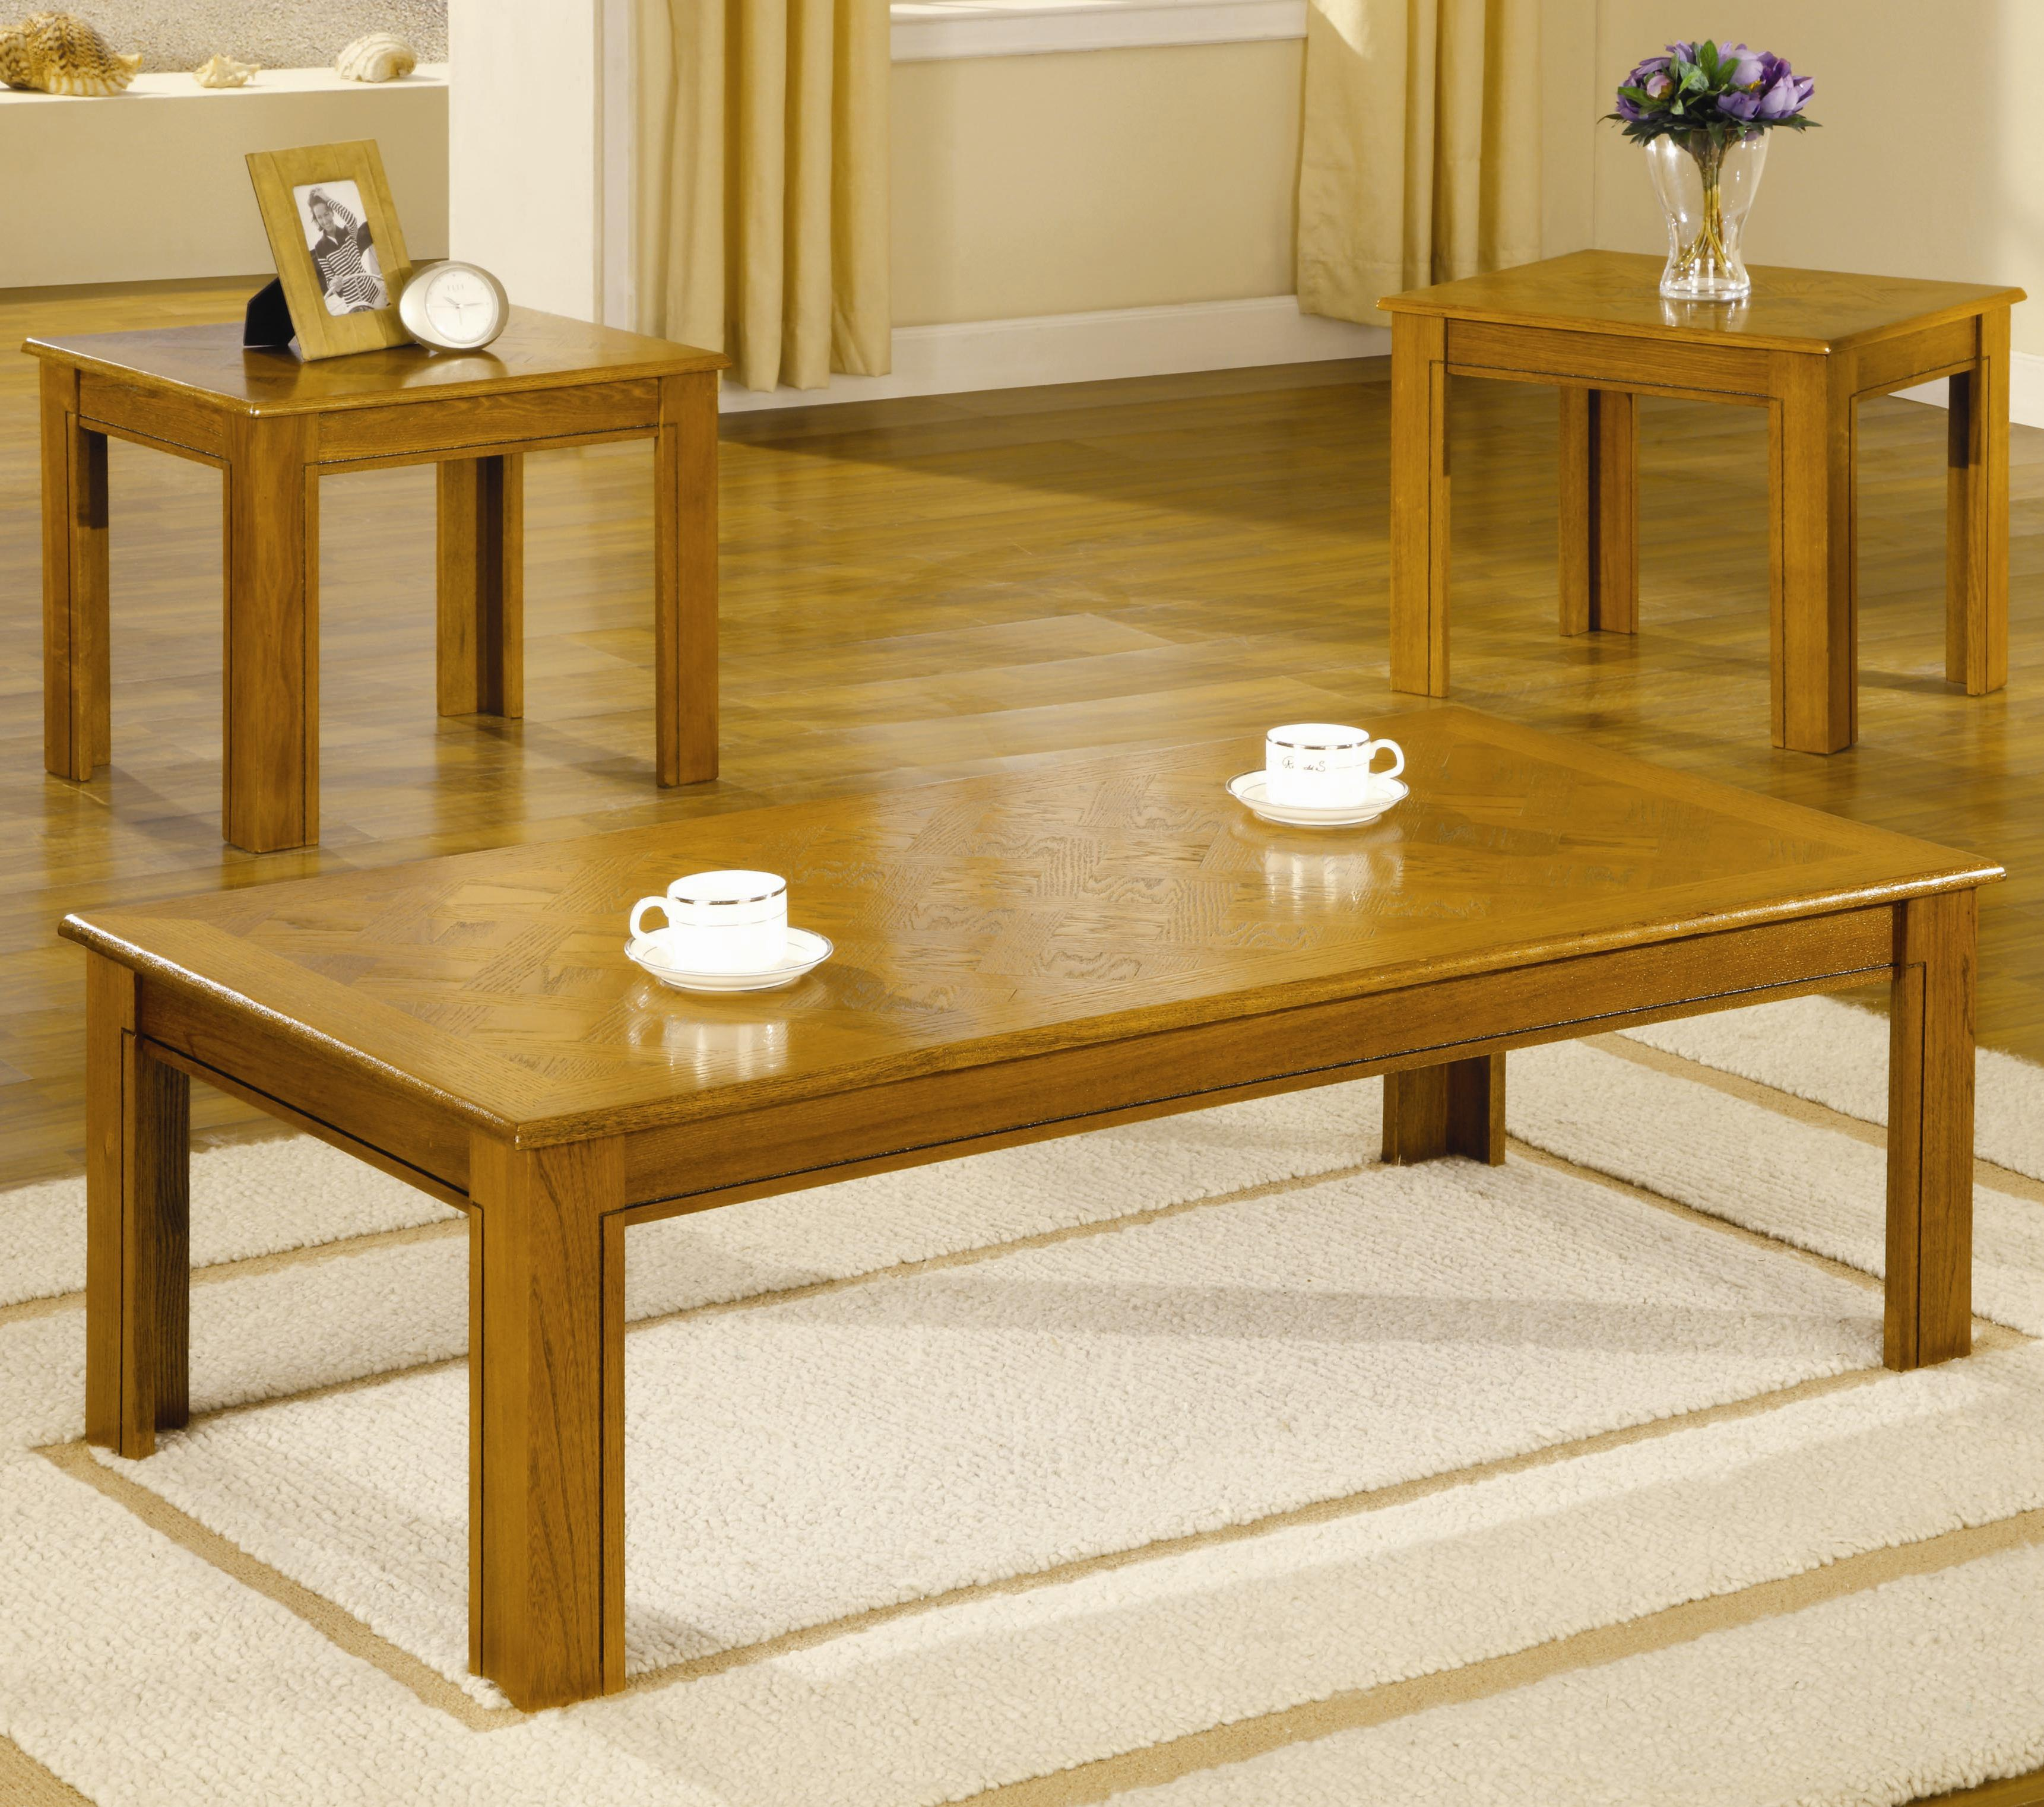 Coaster Occasional Table Sets 3-Piece Contemporary Round Coffee \u0026 End Table Set - Coaster Fine Furniture & Coaster Occasional Table Sets 3-Piece Contemporary Round Coffee ...